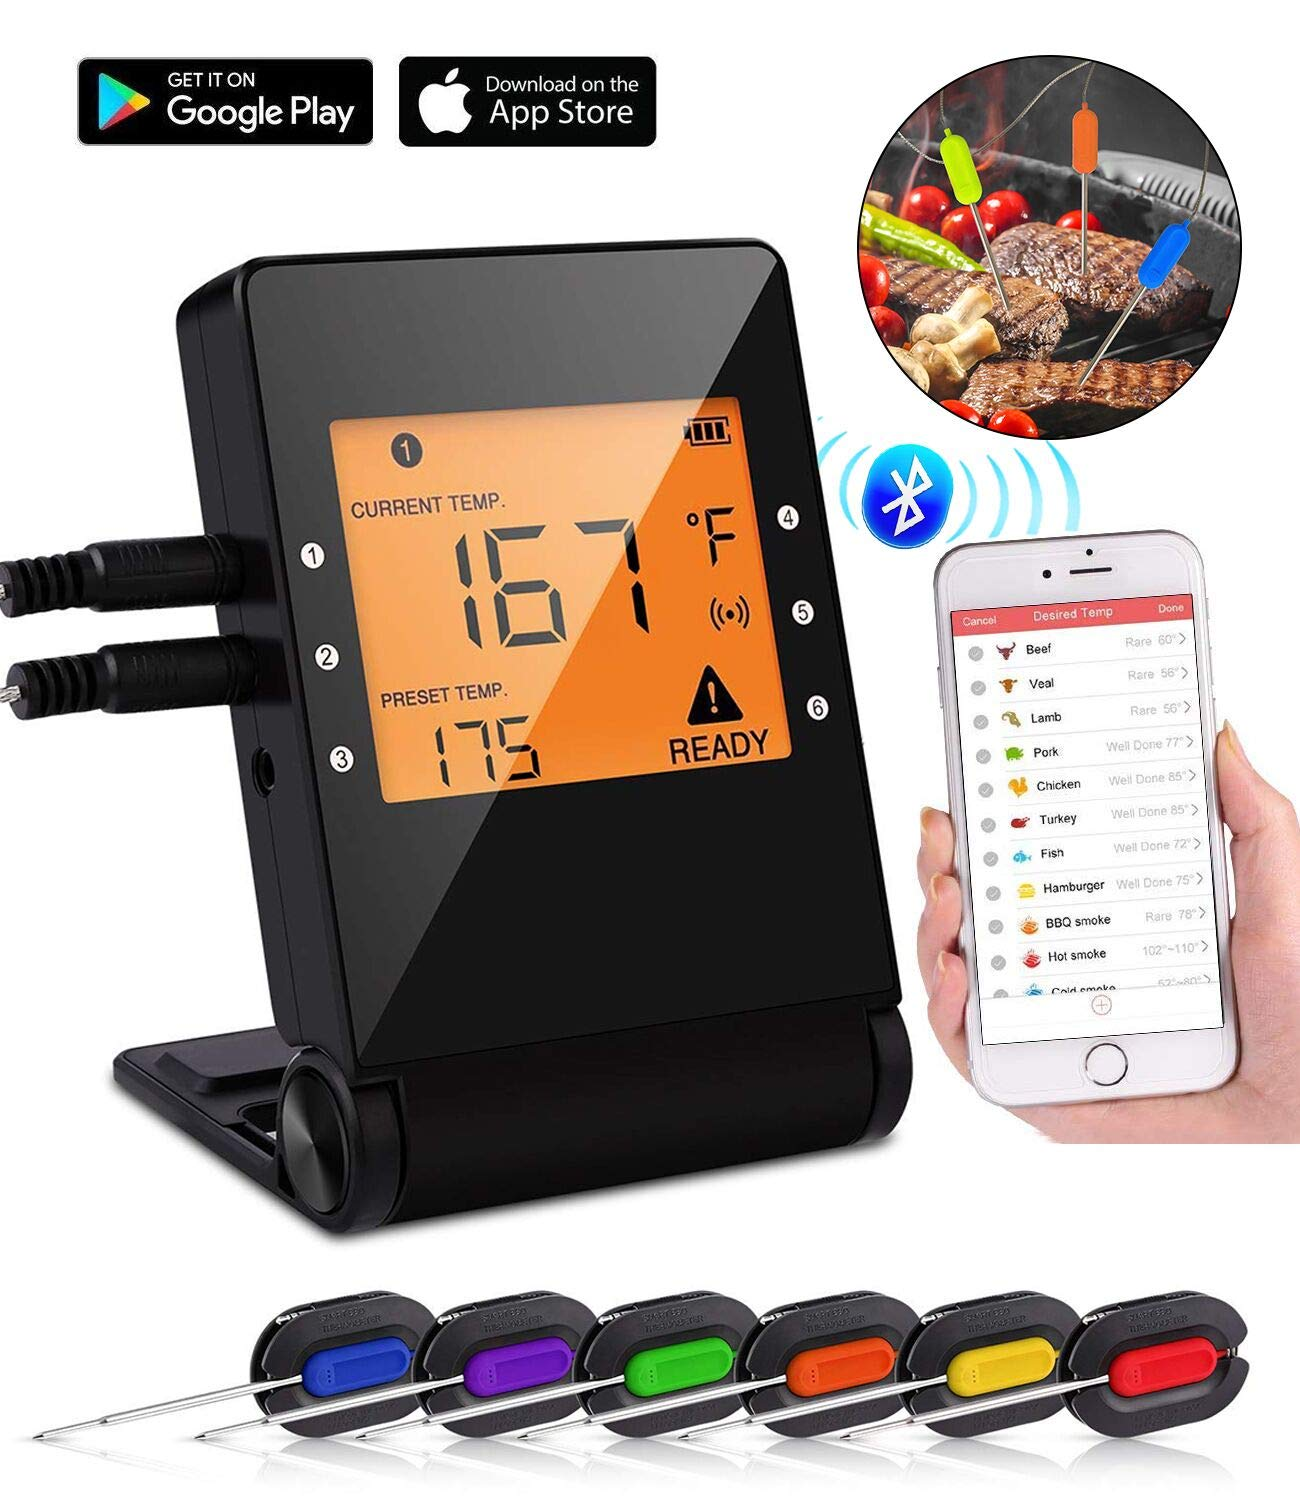 BBC902+wireless thermometer+6probes